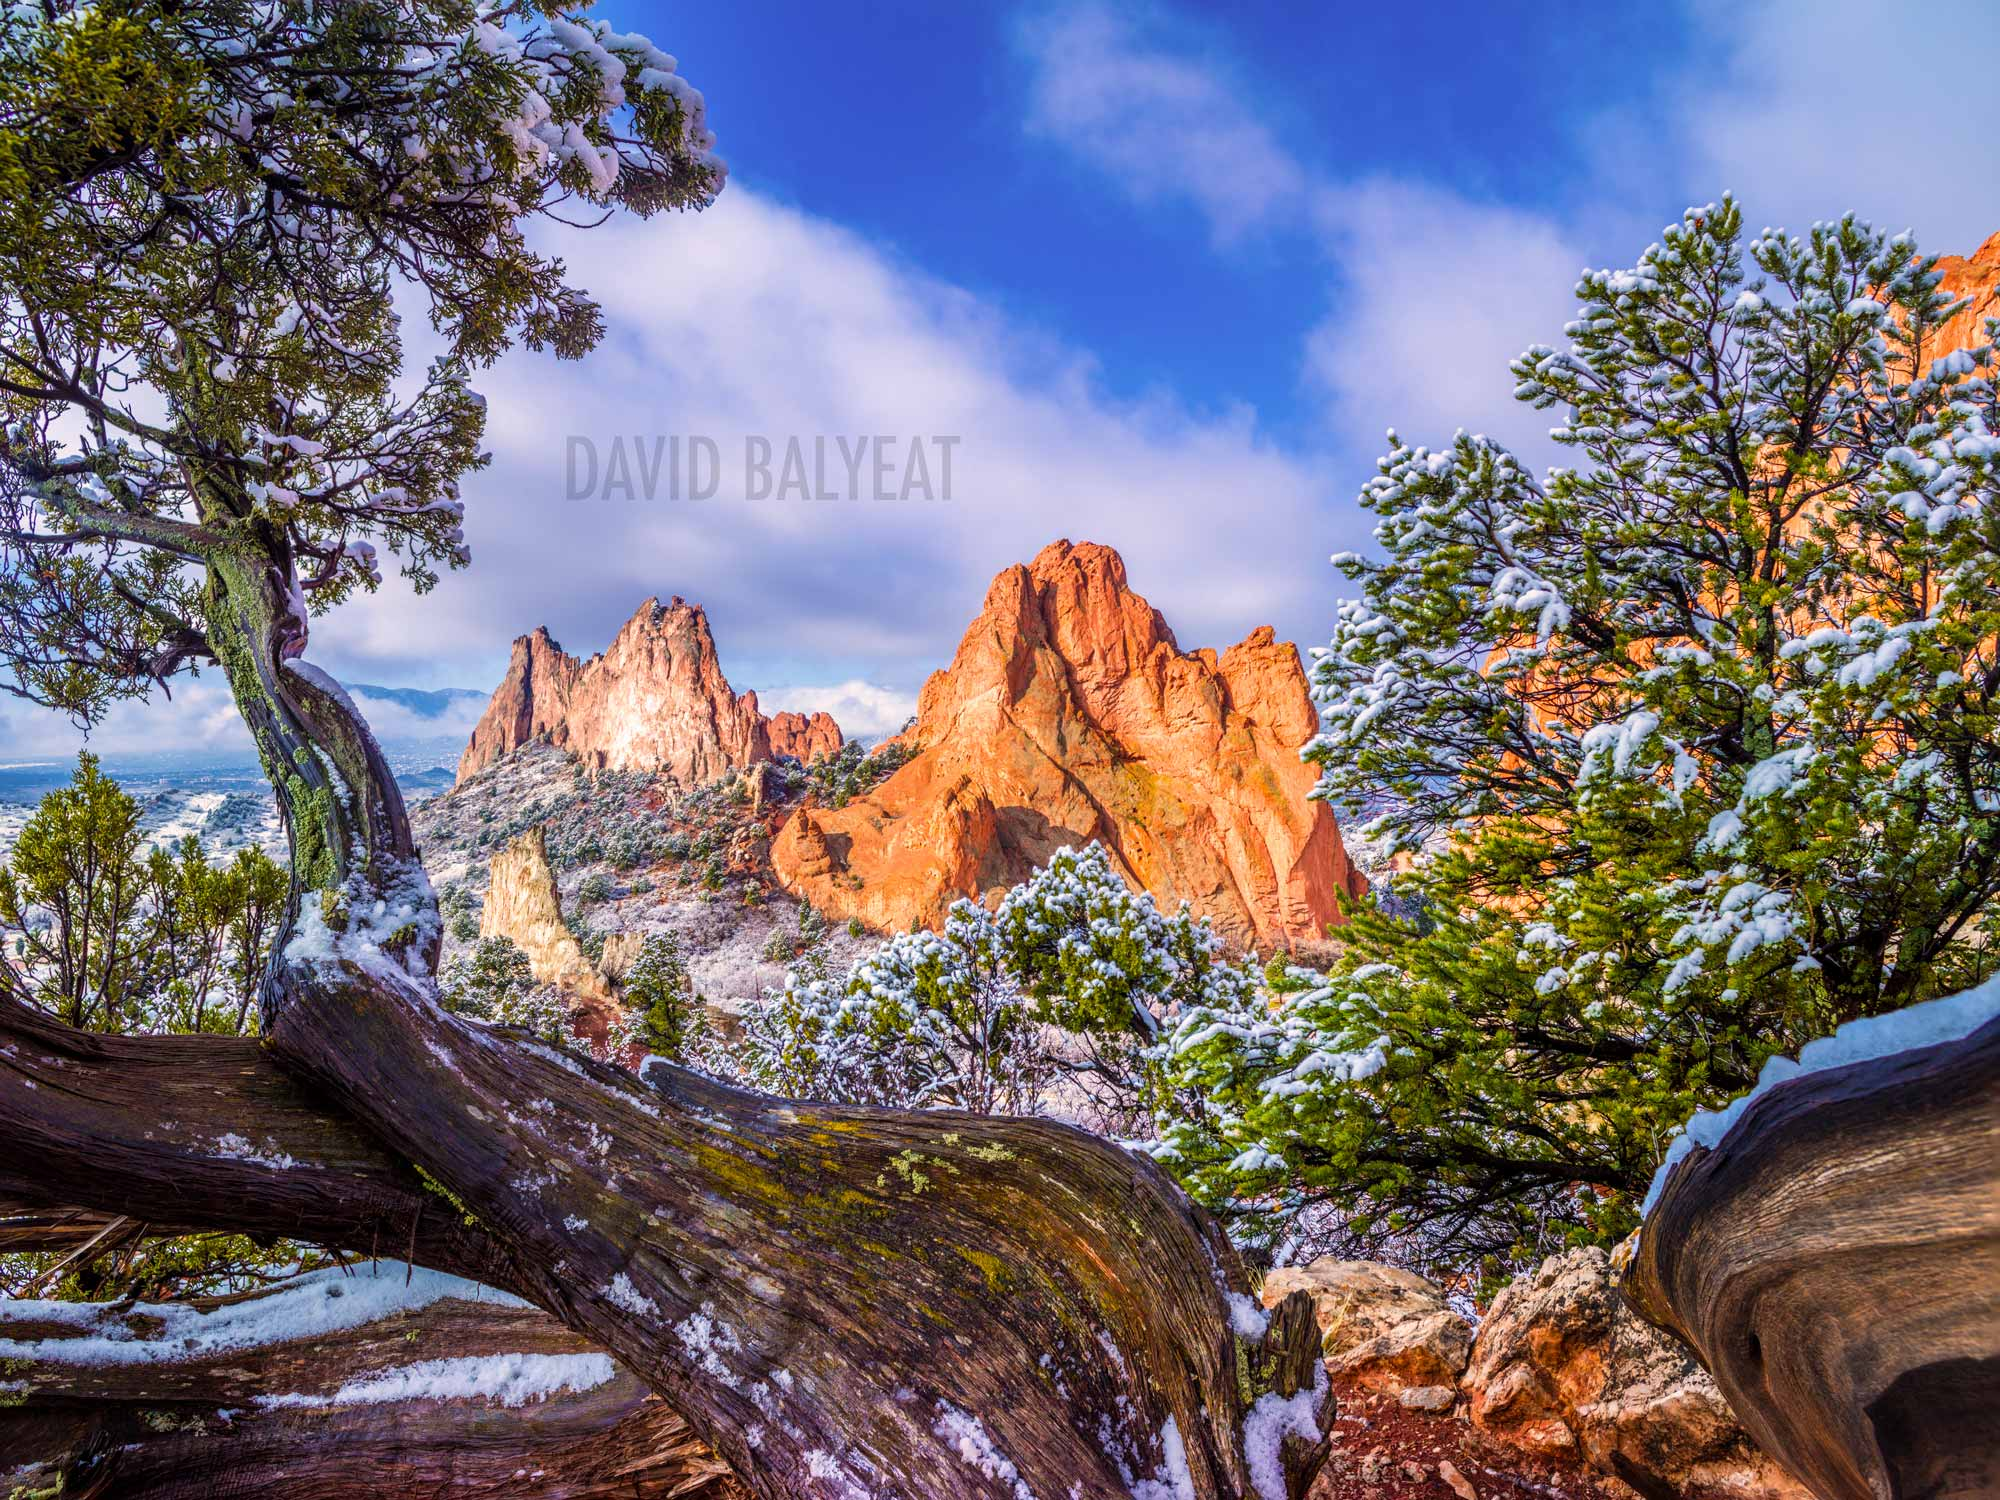 Garden of the Gods snow Colorado high-definition HD professional landscape photography